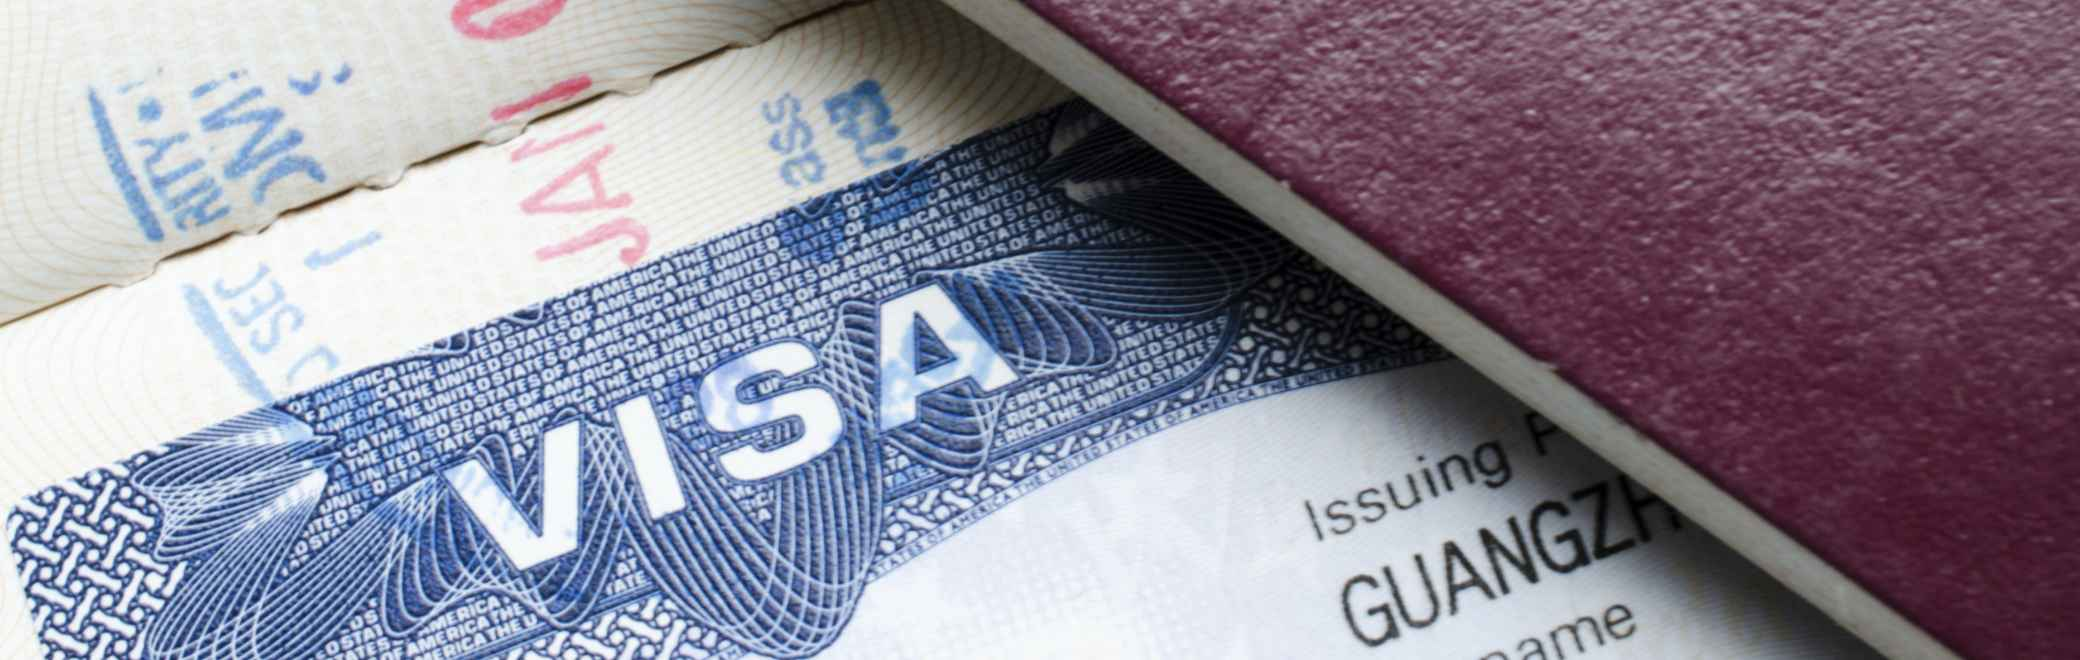 apply for your visa and passport in preparation to study in the US